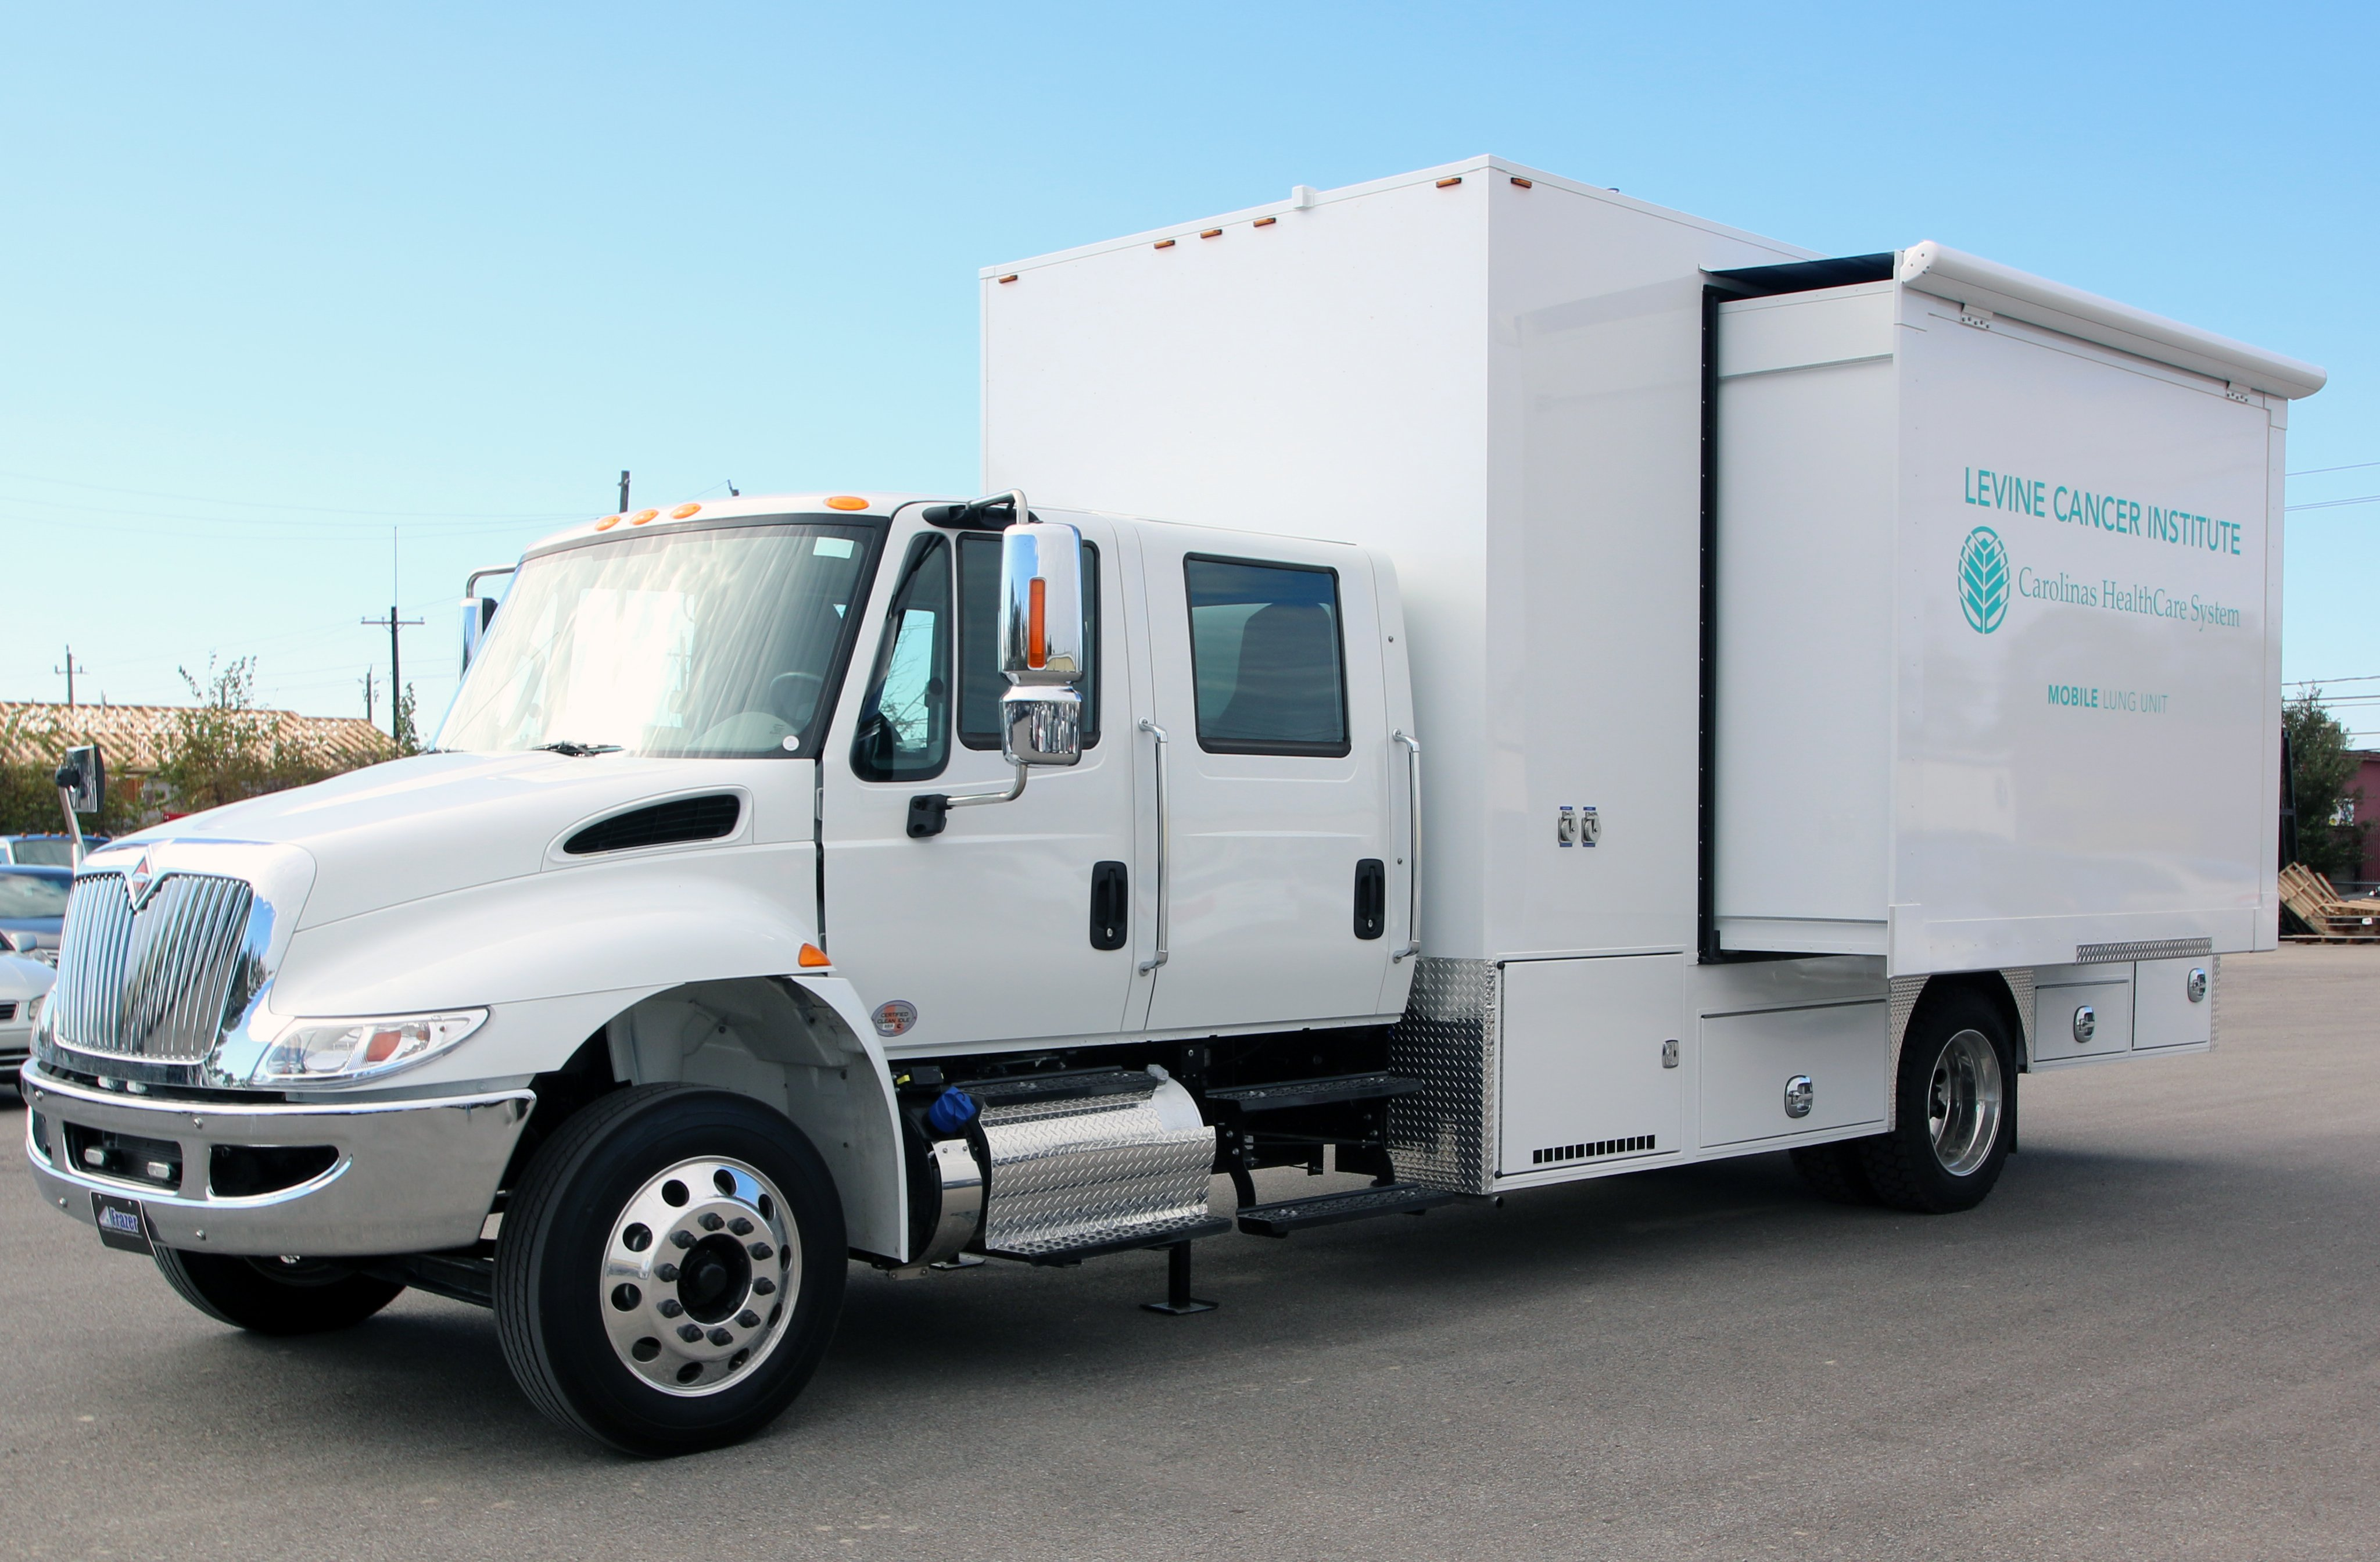 Specialty mobile healthcare unit